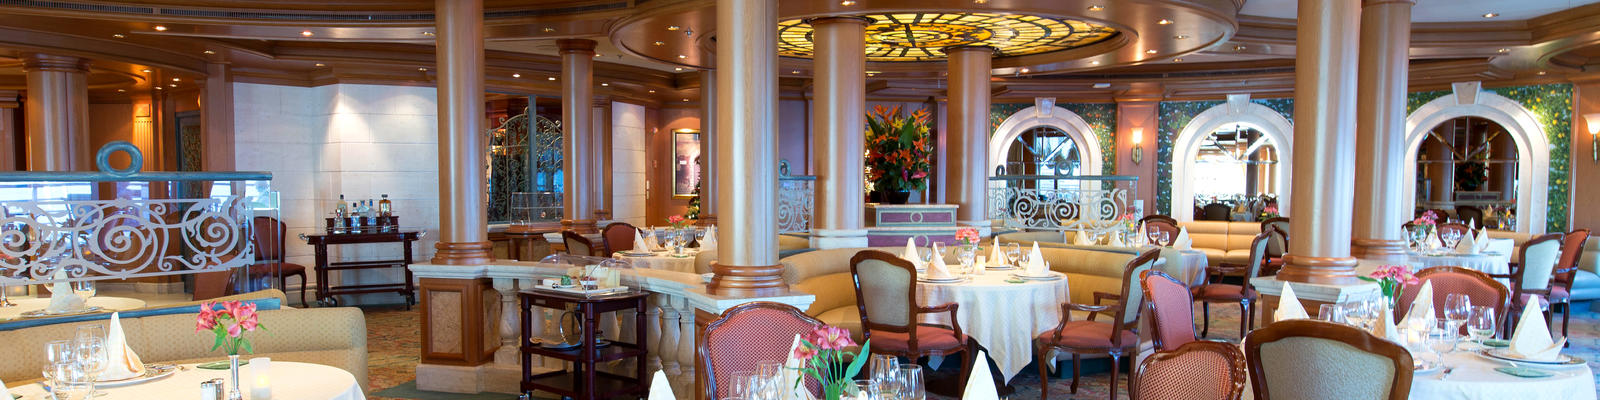 Sabatini's on Crown Princess (Photo: Cruise Critic)